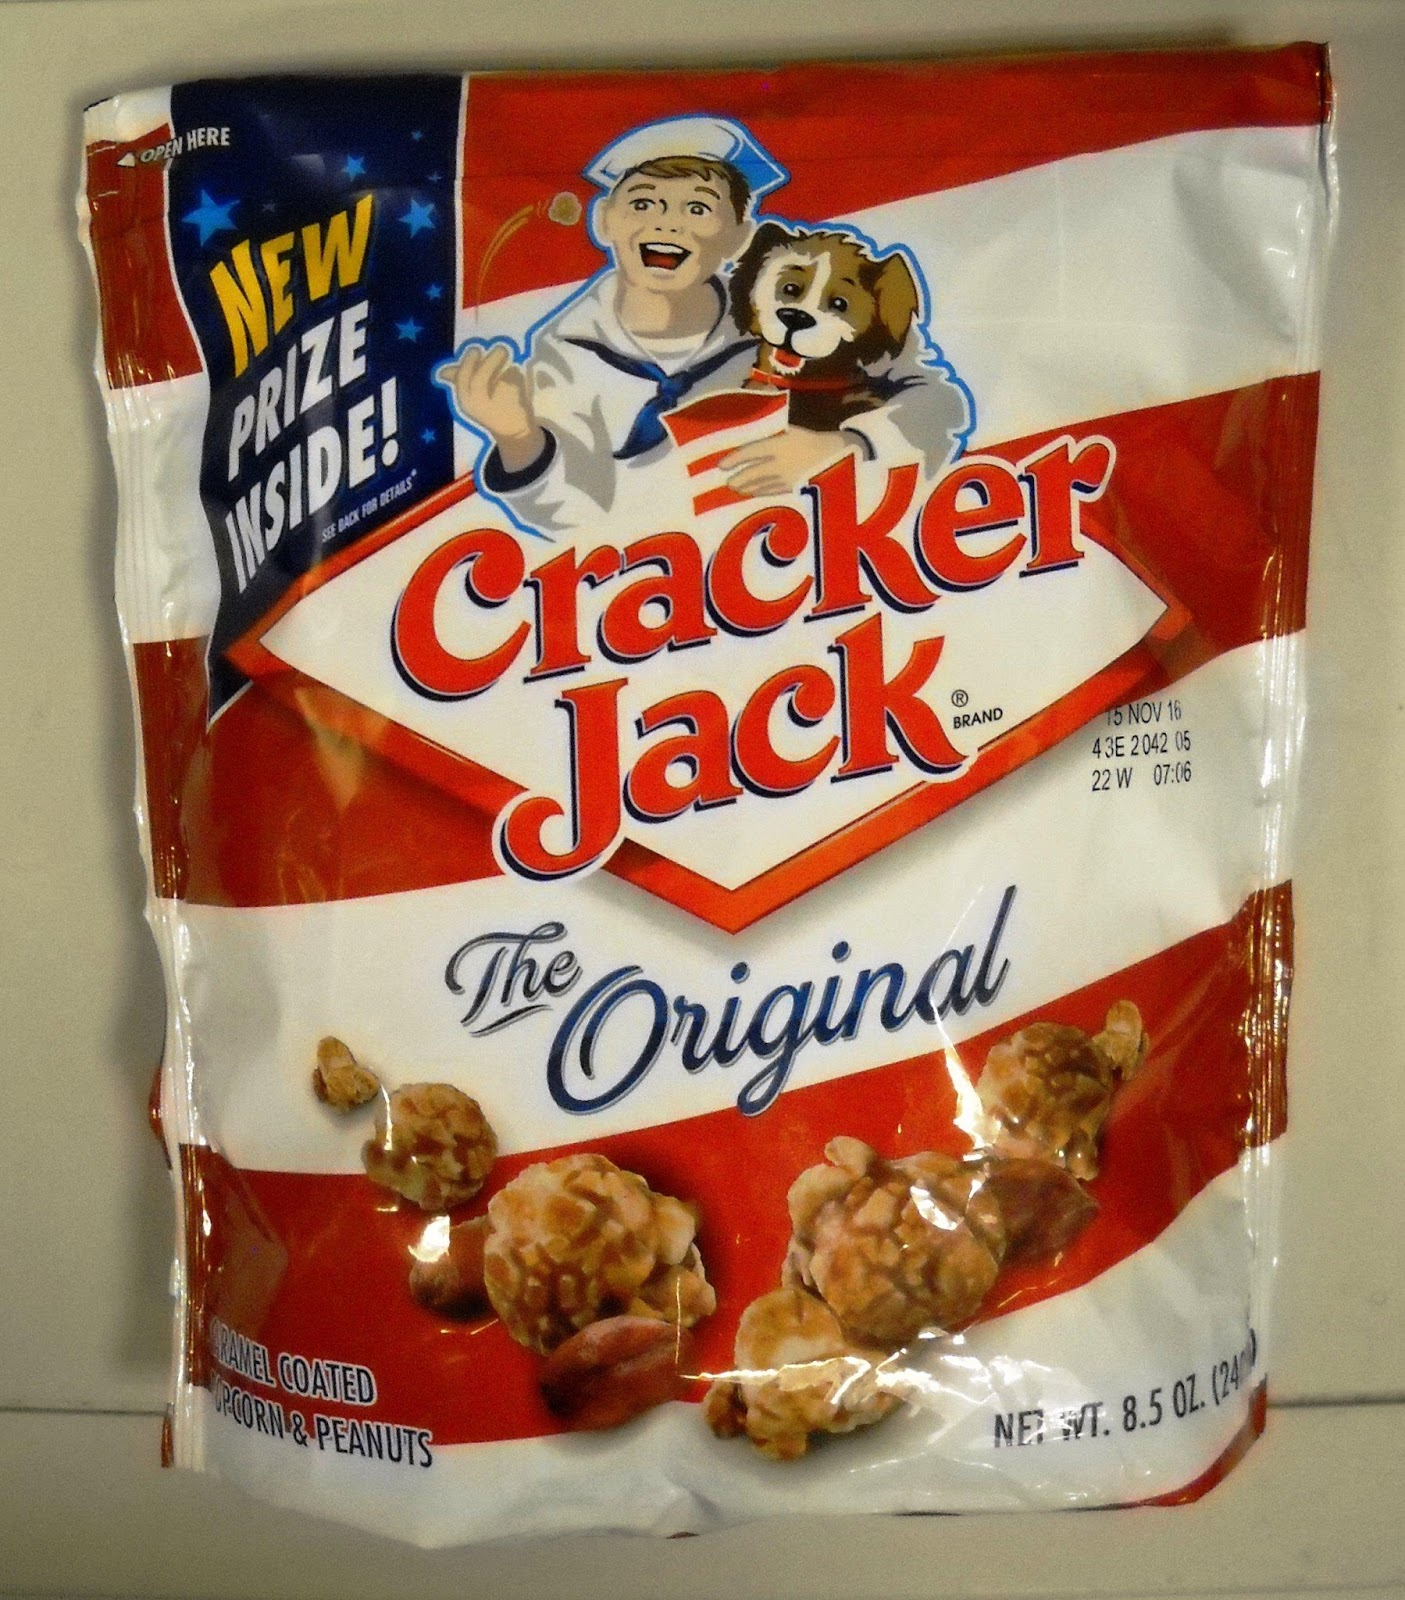 frito-lay cracker jack essay Critical thinking as level ocr revision · frito-lay cracker jack essay · writing an analytical essay introduction · good thesis for v for vendetta · old question papers of punjab university · essay of family violence · essay writersnet · gmat essay score average · dissertation proposal for mba finance · which of the following is not.